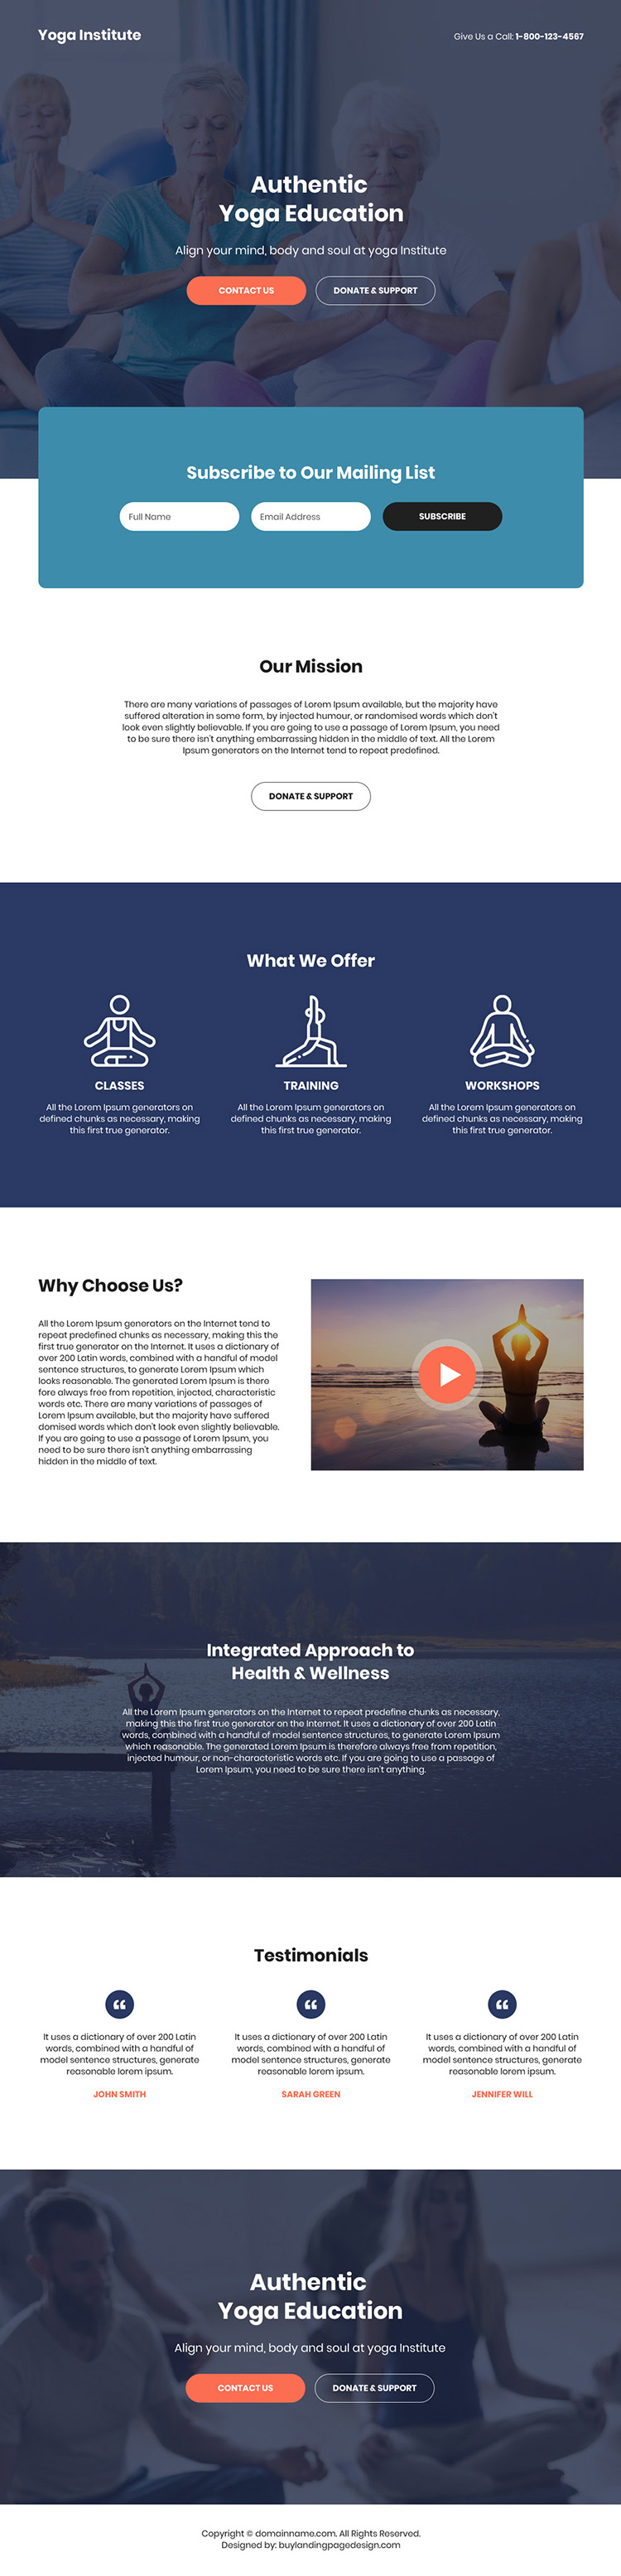 authentic yoga education bootstrap landing page design